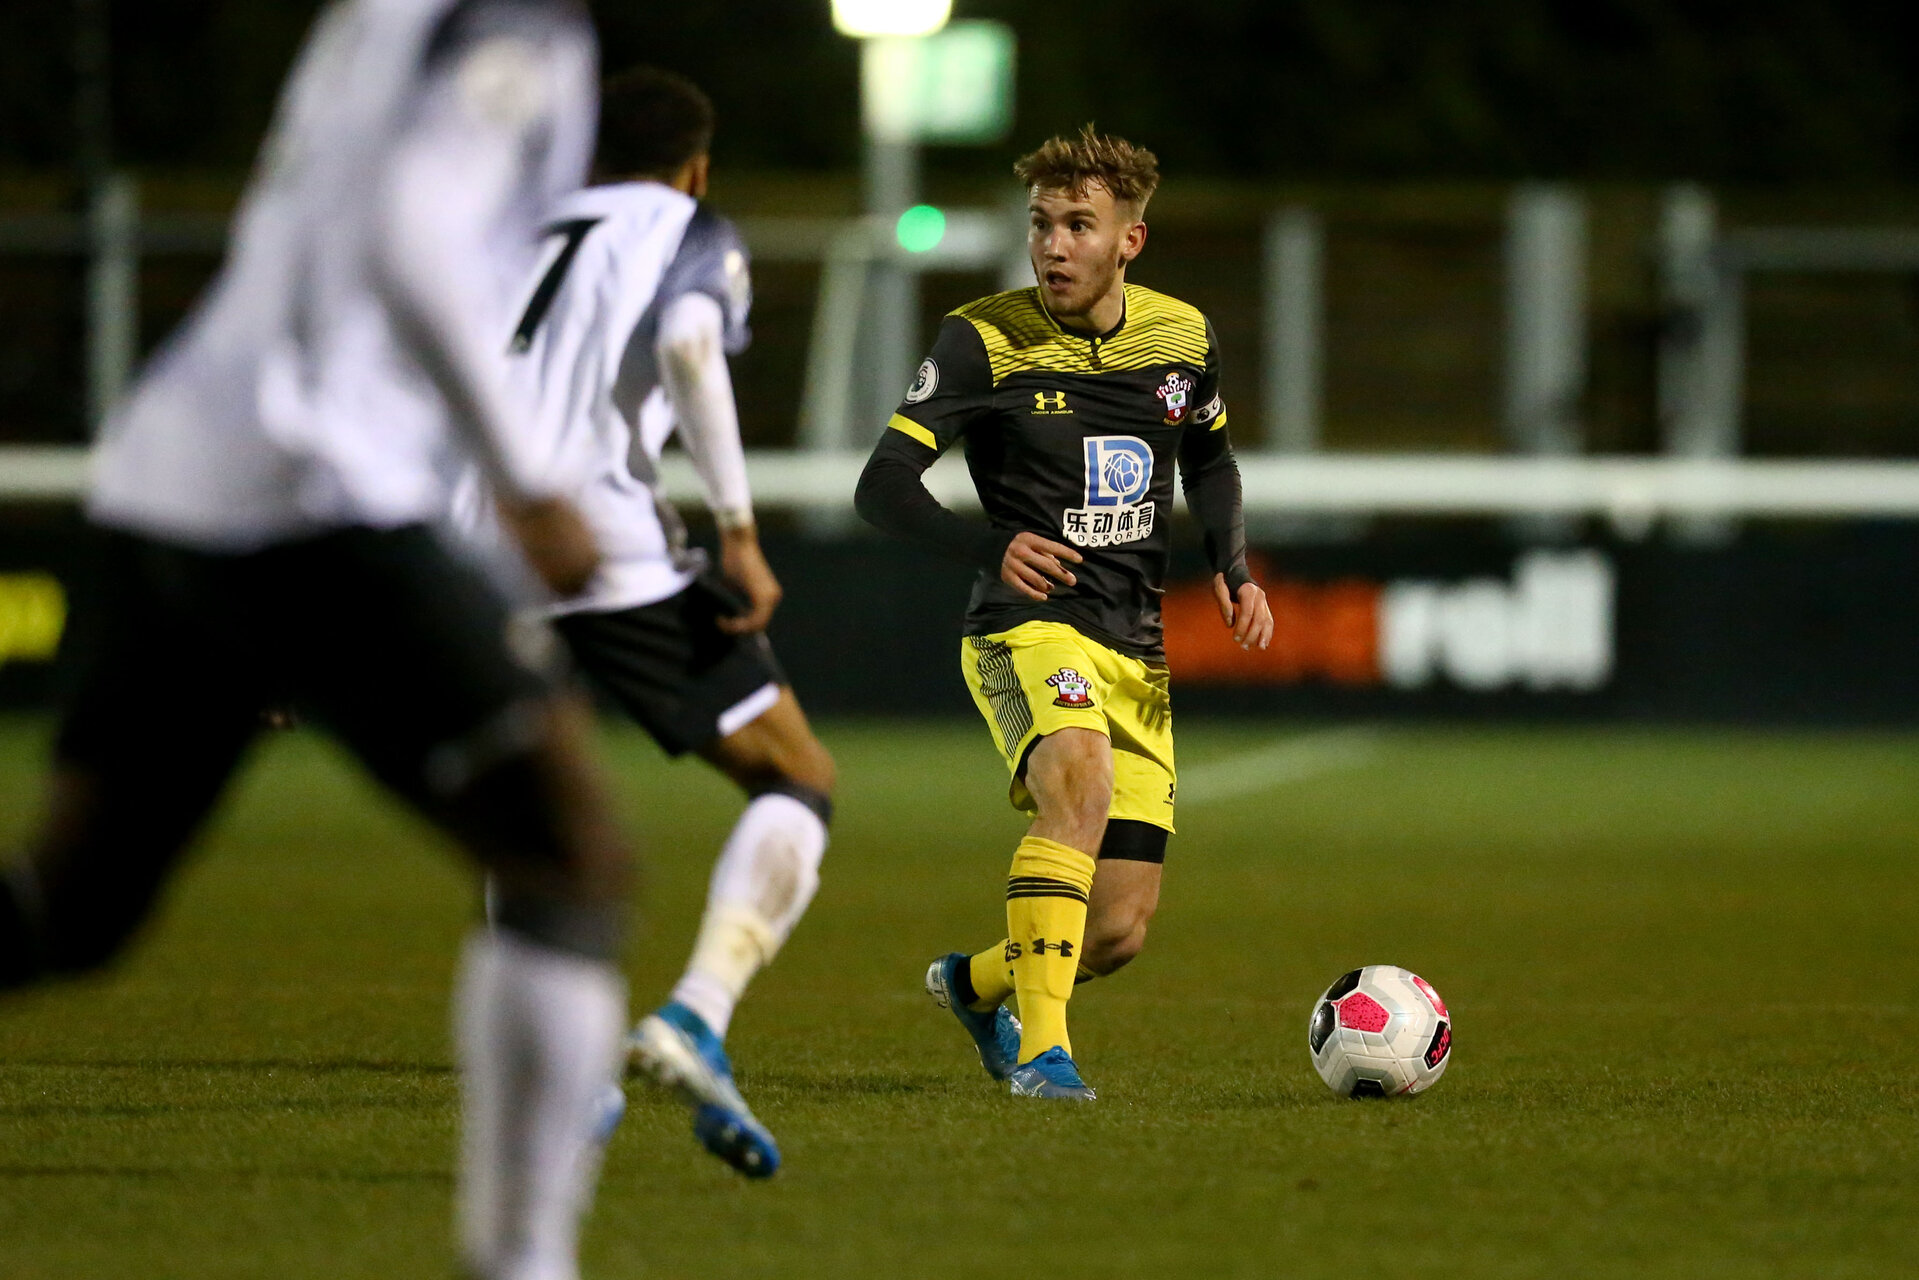 LOUGHBOUROUGH, ENGLAND - DECEMBER 10: Jake Vokins  during Premier League International Cup match between Derby County and Southampton at Loughborough University Stadium on December 10 2019 in Loughborough, England (Photo by Isabelle Field/Southampton FC via Getty Images)